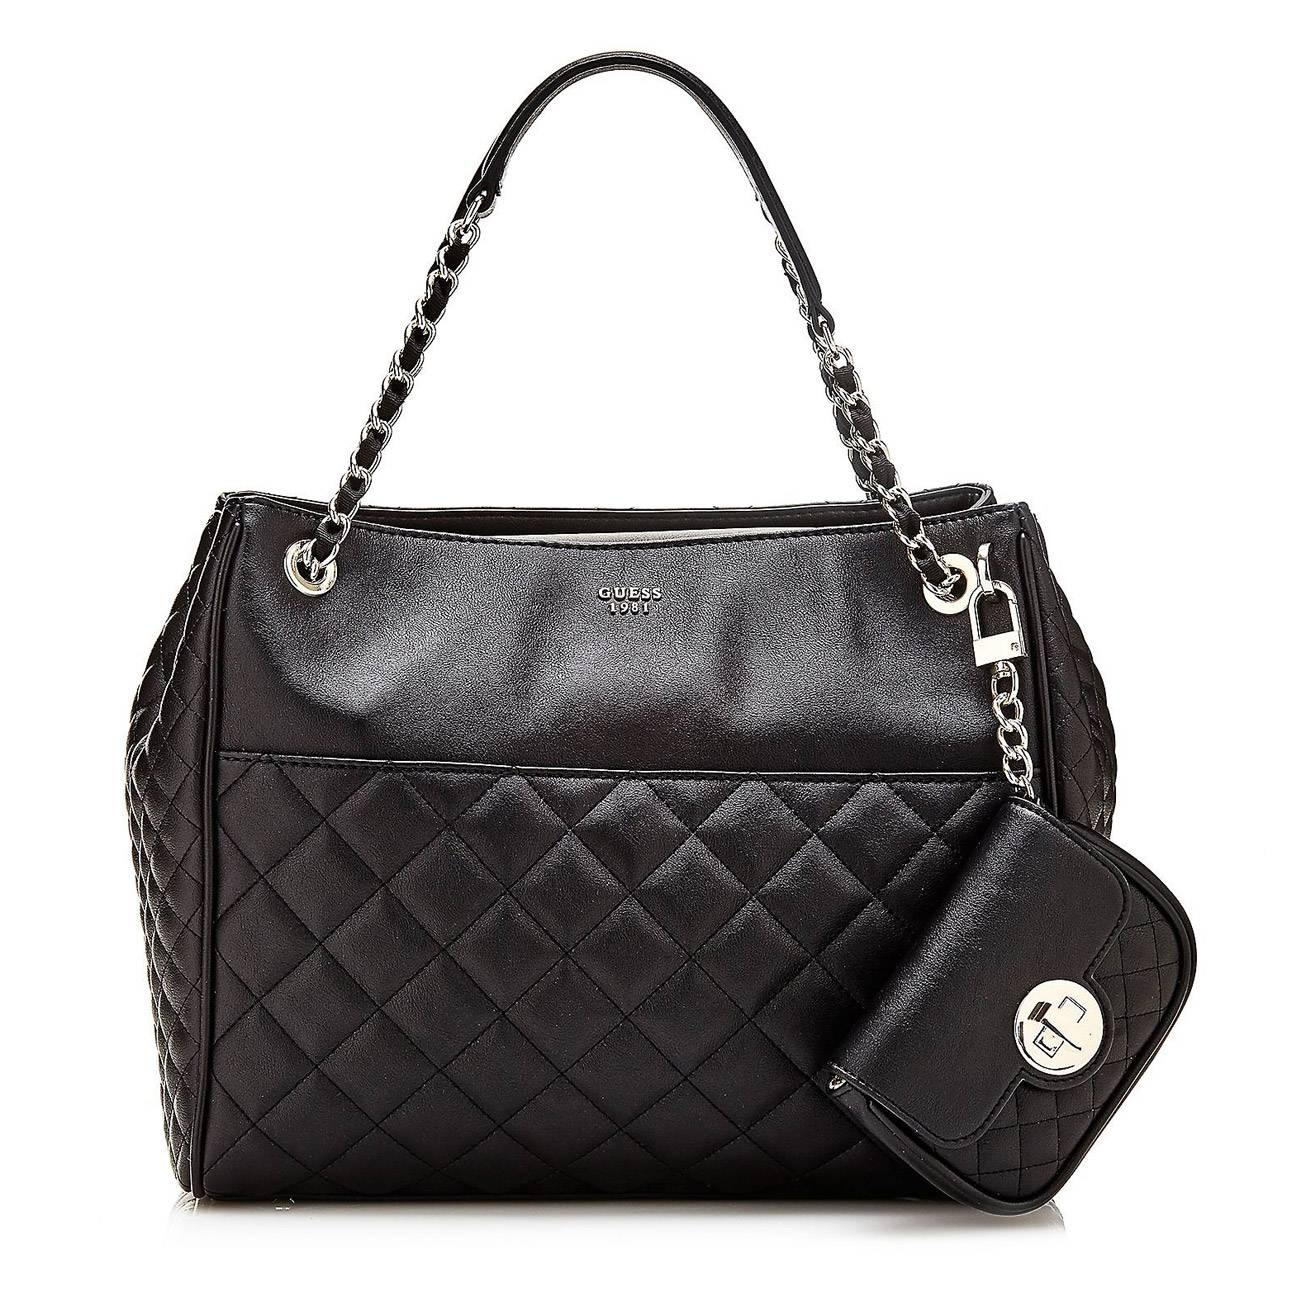 WILSON QUILTED-LOOK